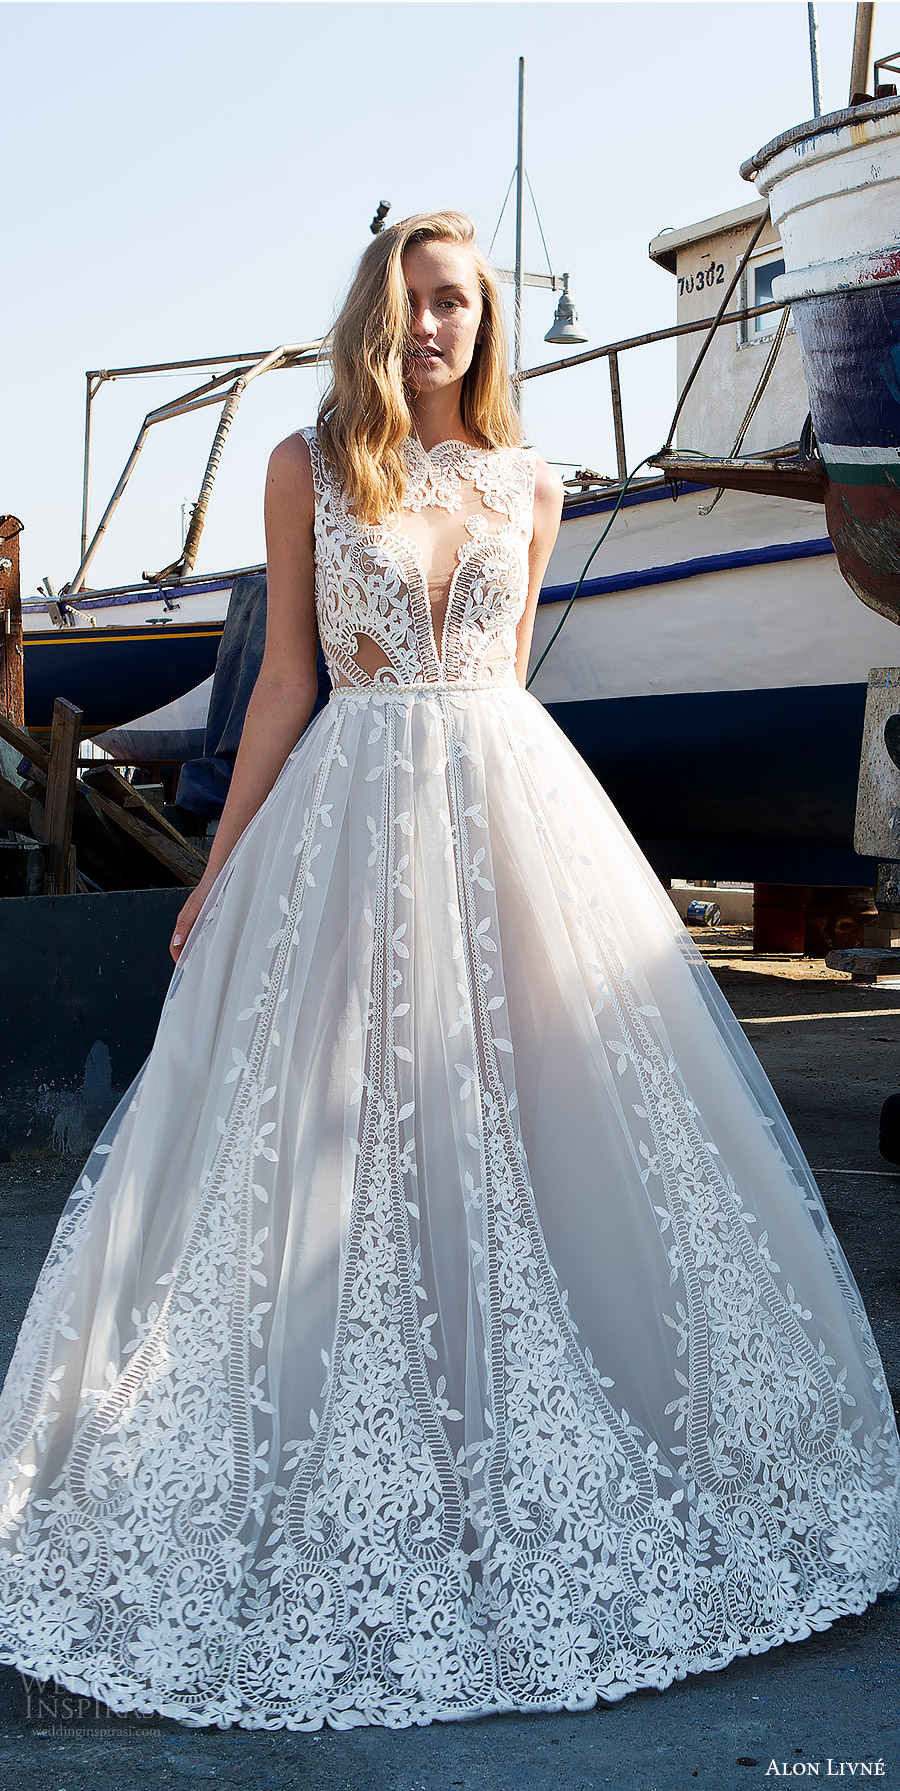 alon livne white pre 2018 bridal sleeveless jewel neck sheer bodice lace ball gown wedding dress (beatrice) mv princess romantic